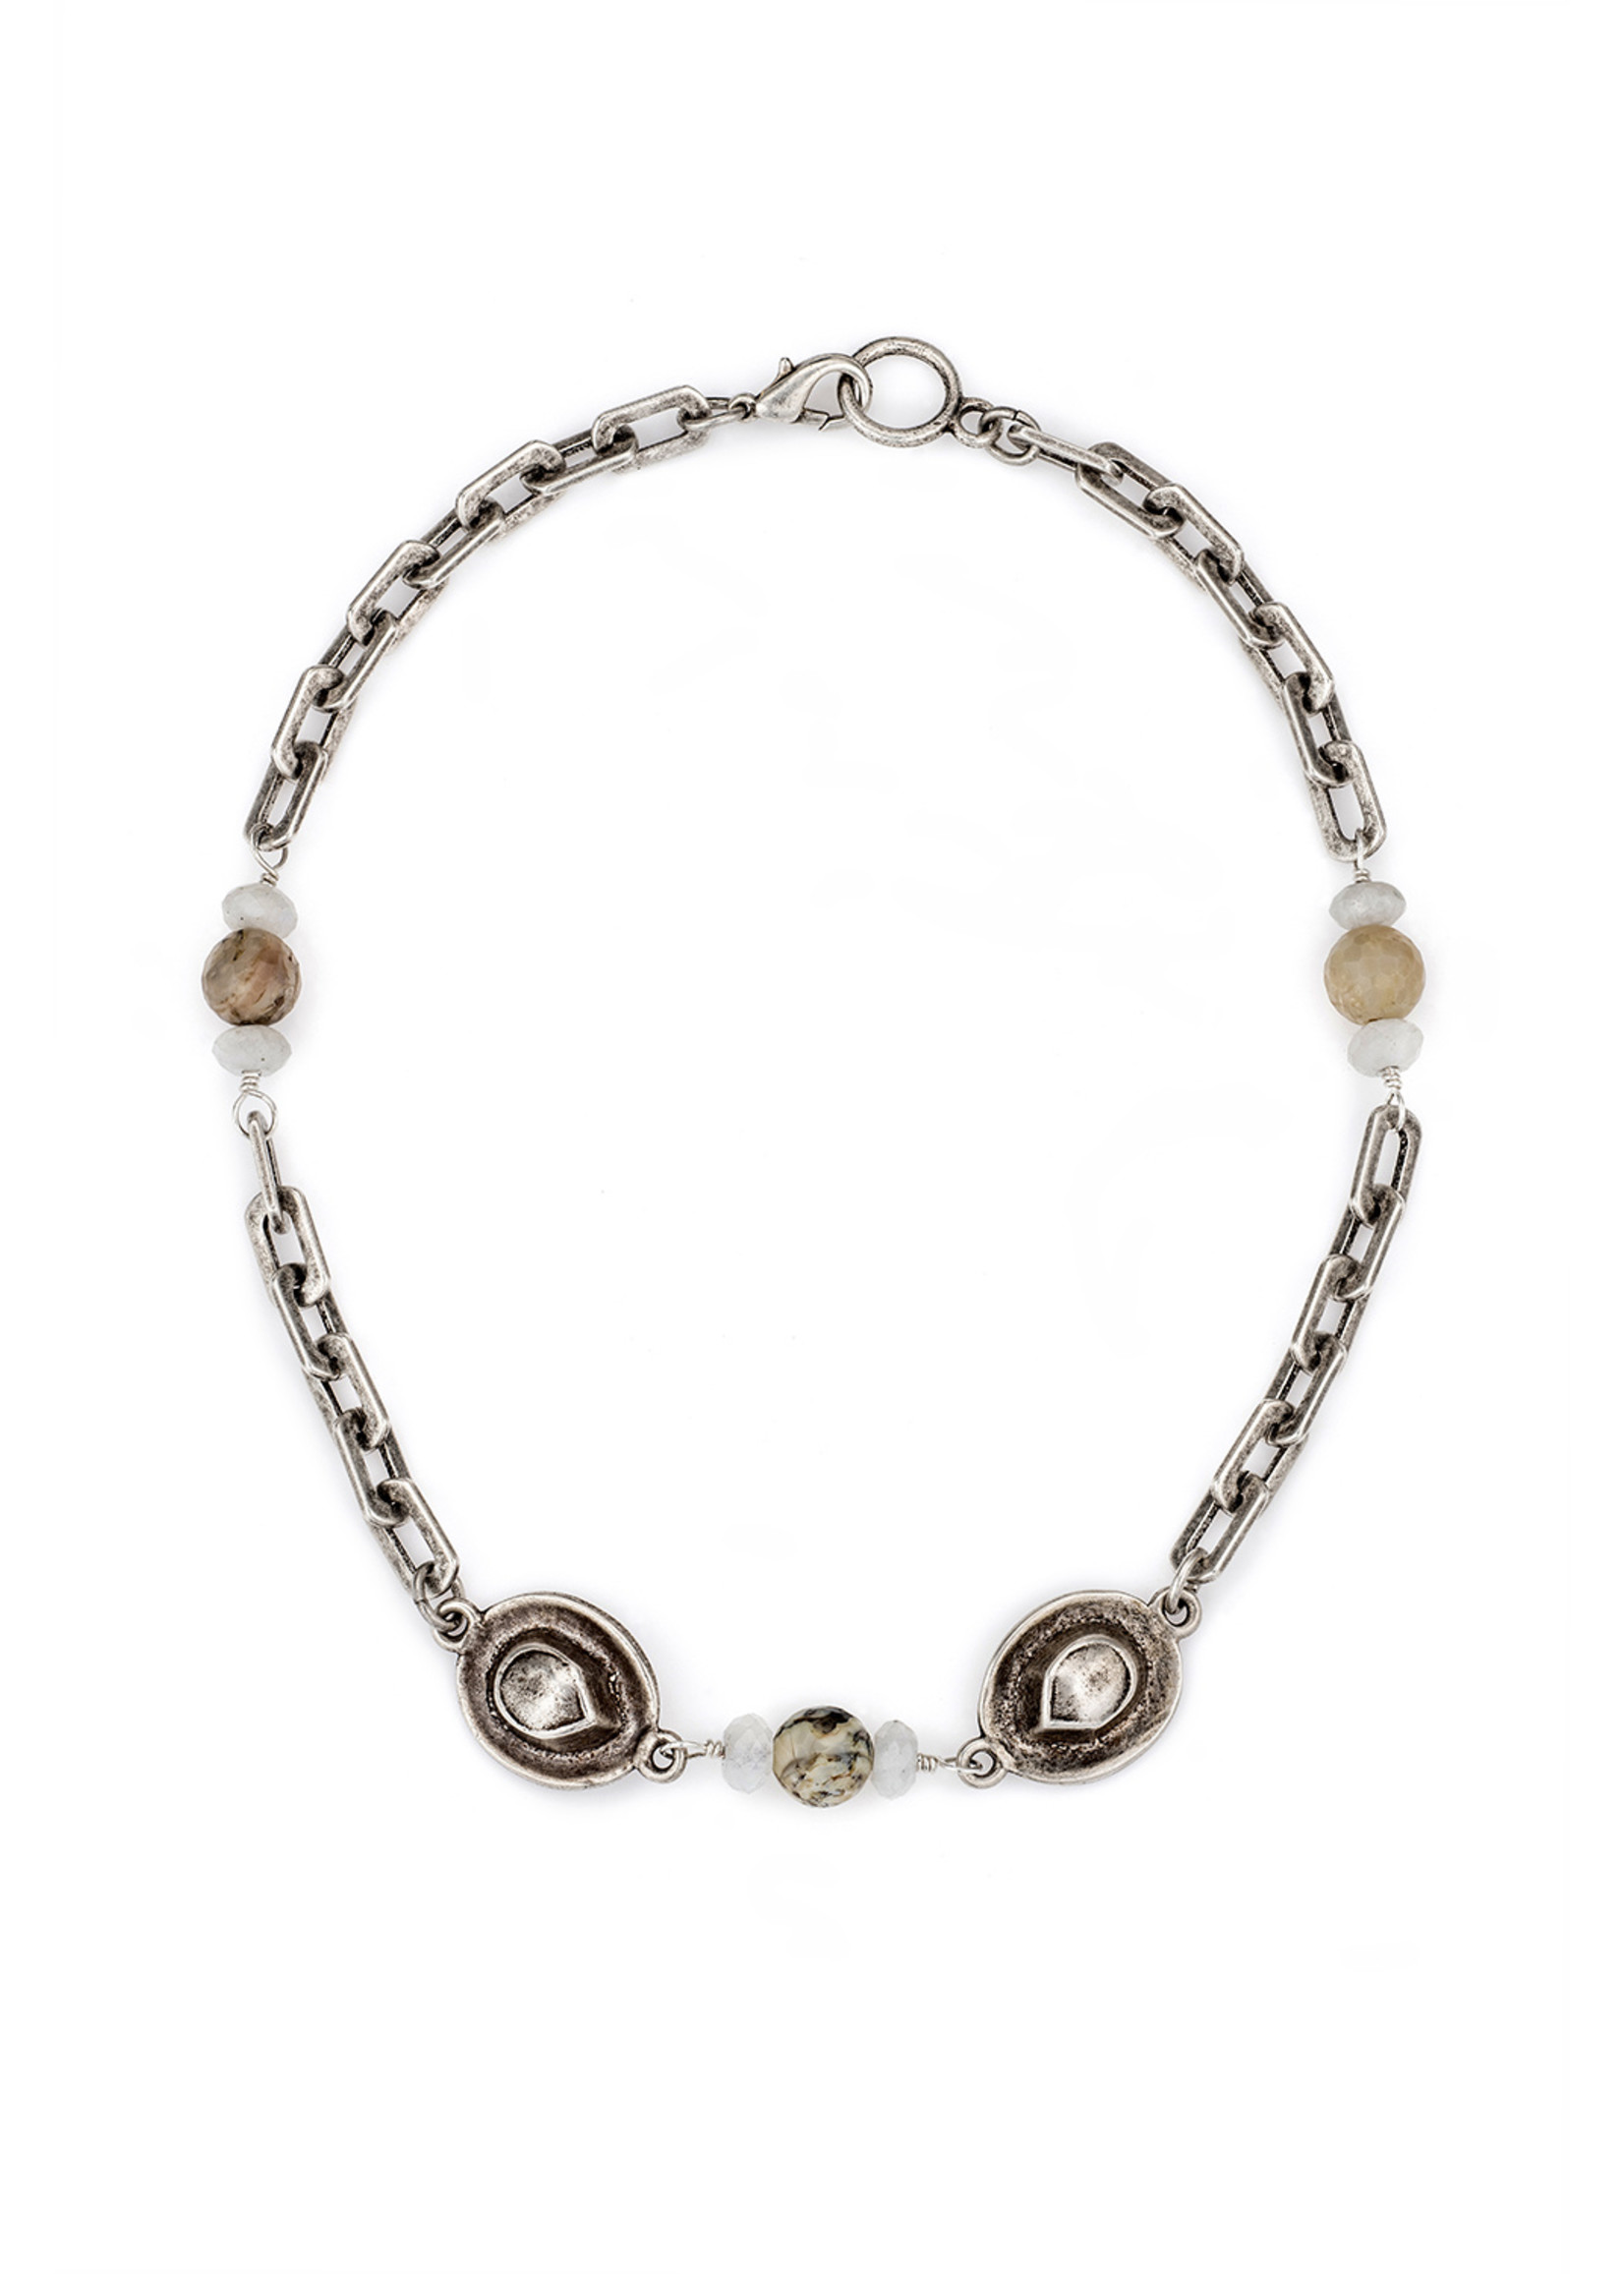 Honfleur Chain with La Lune Mix and Cowgirl Hats